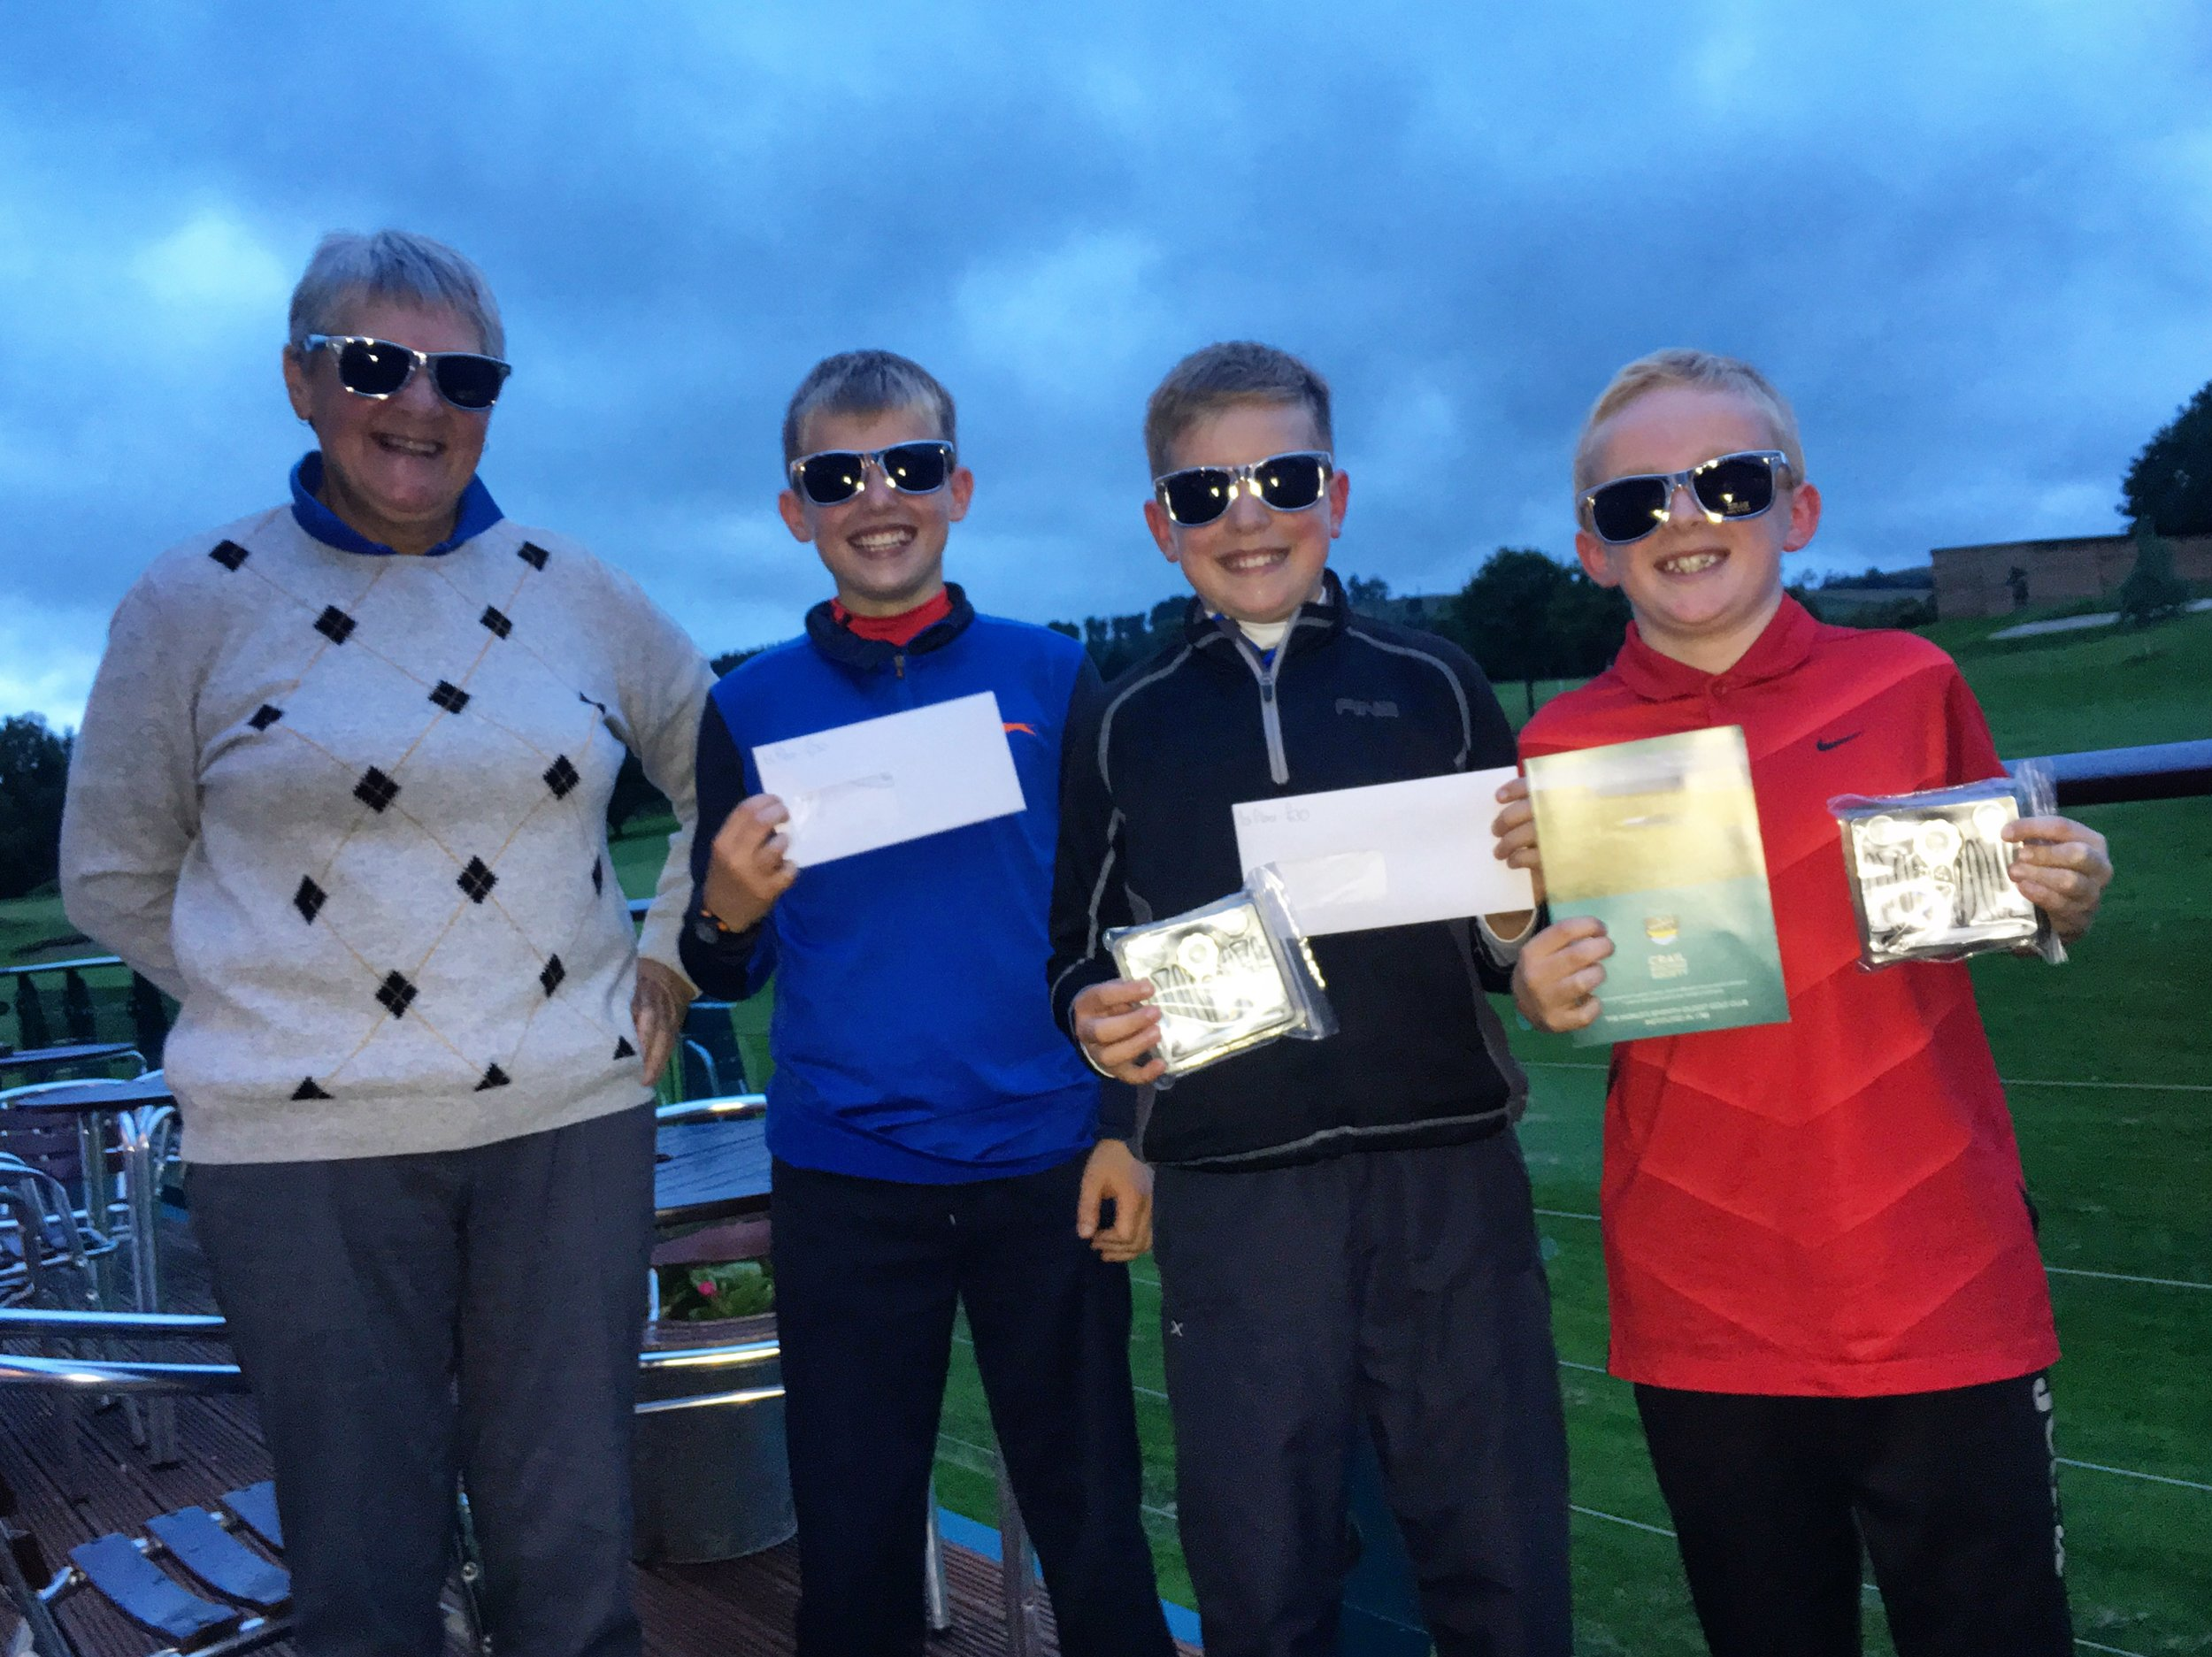 Sheila with her young partners from the victorious Odd Shaped Ball team